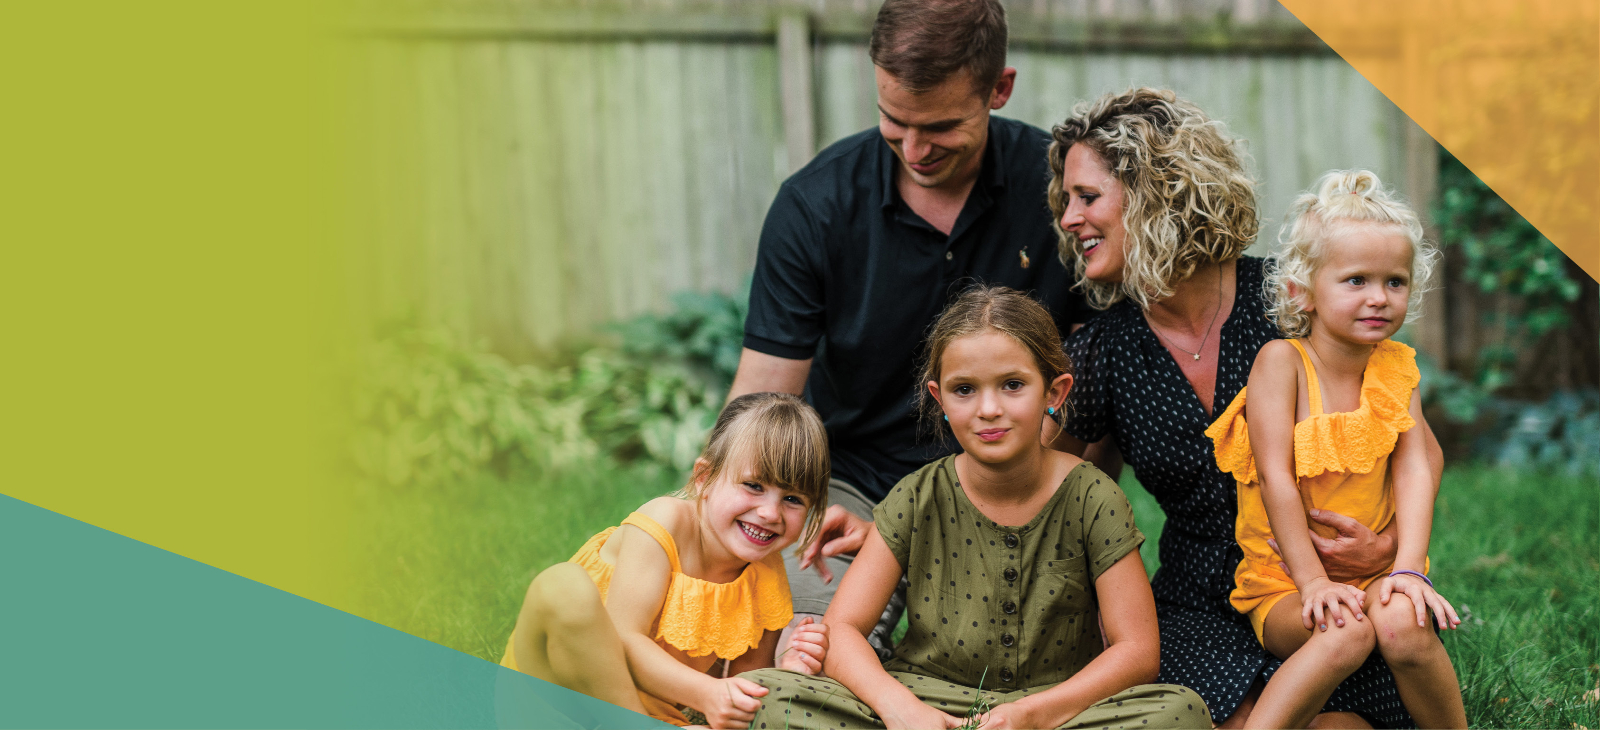 Foster Stories | Christian Heritage | Foster Care | Why Christian Heritage| Lincoln Kearney Omaha Nebraska | Foster Care System | Foster Care Agencies | Foster Care Kinship | Foster Care Adoption | What is Foster Care